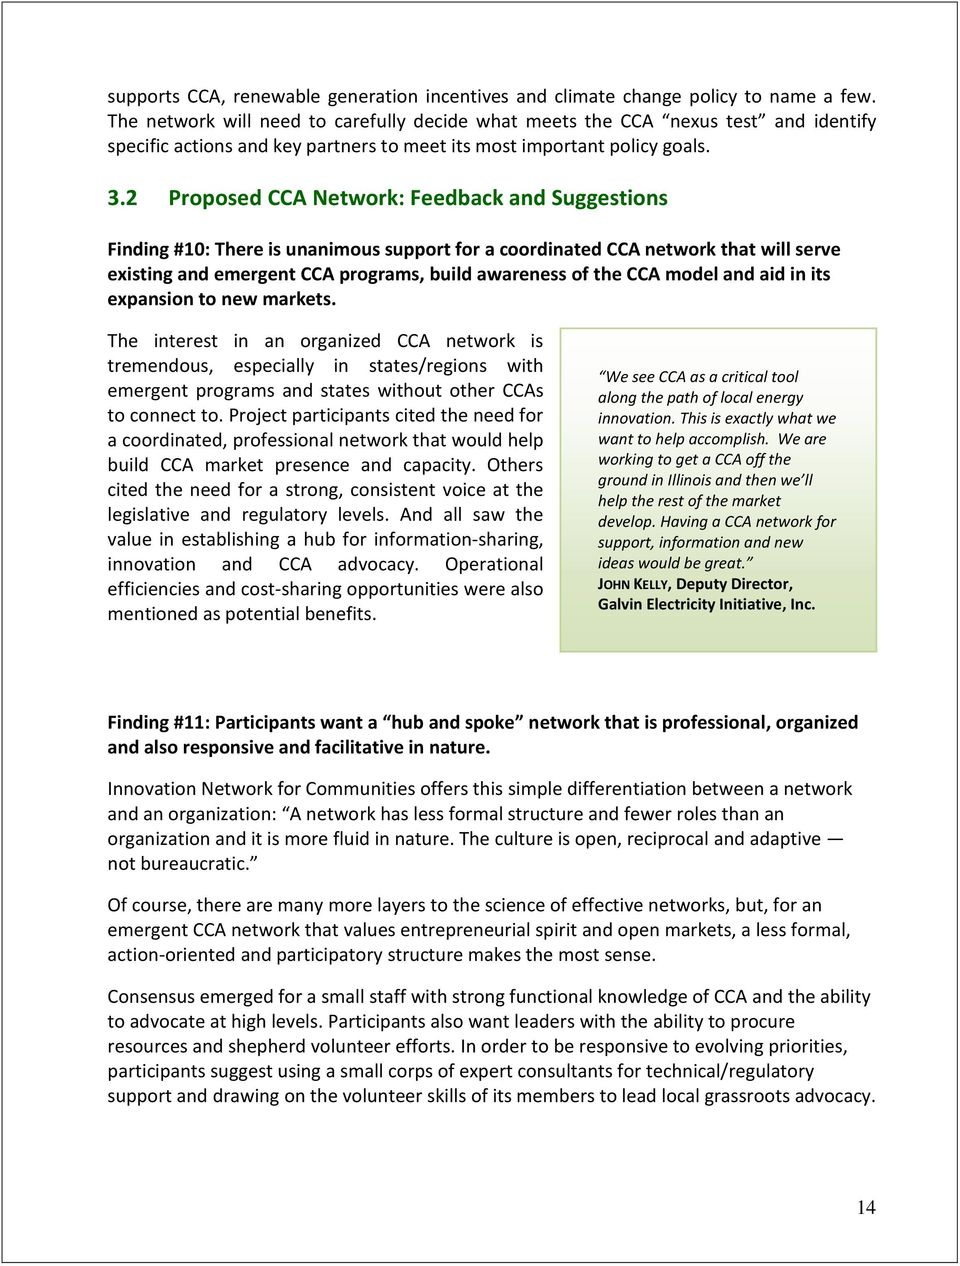 2 Proposed CCA Network: Feedback and Suggestions Finding #10: There is unanimous support for a coordinated CCA network that will serve existing and emergent CCA programs, build awareness of the CCA